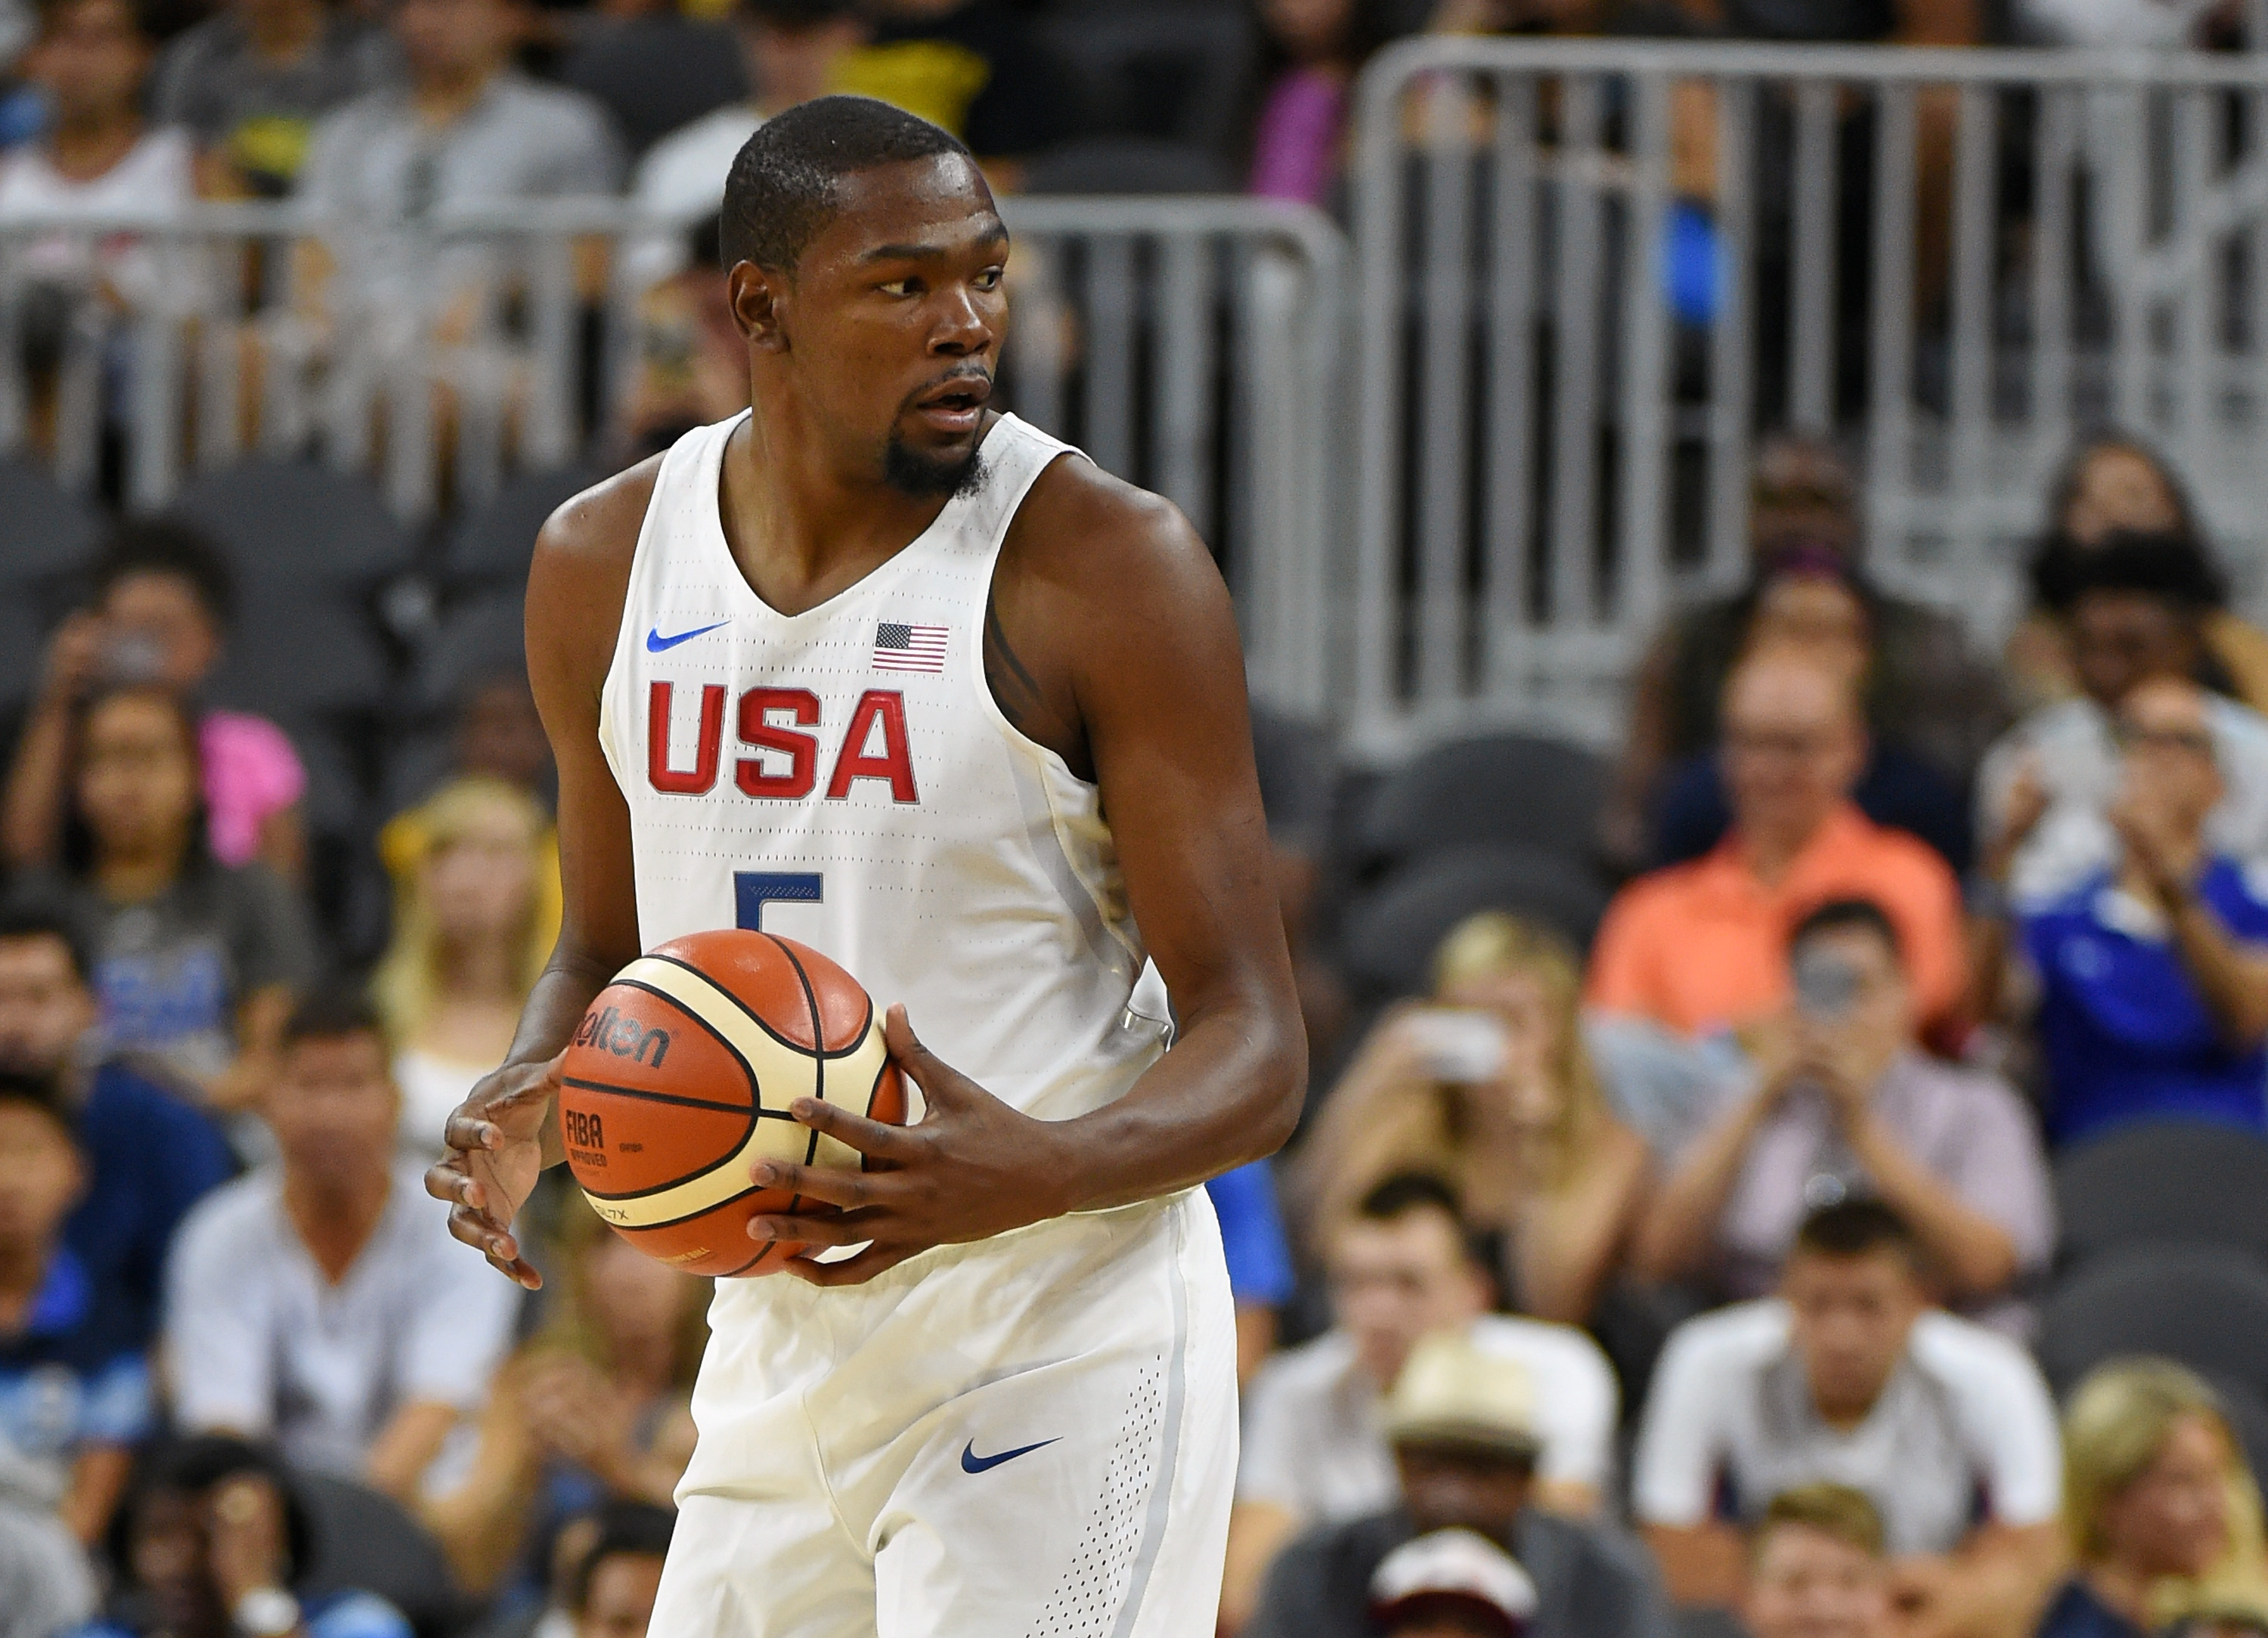 LAS VEGAS, NV - JULY 22: Kevin Durant #5 of the United States sets up a play against Argentina during a USA Basketball showcase exhibition game at T-Mobile Arena on July 22, 2016 in Las Vegas, Nevada. The United States won 111-74.   Ethan Miller/Getty Images/AFP